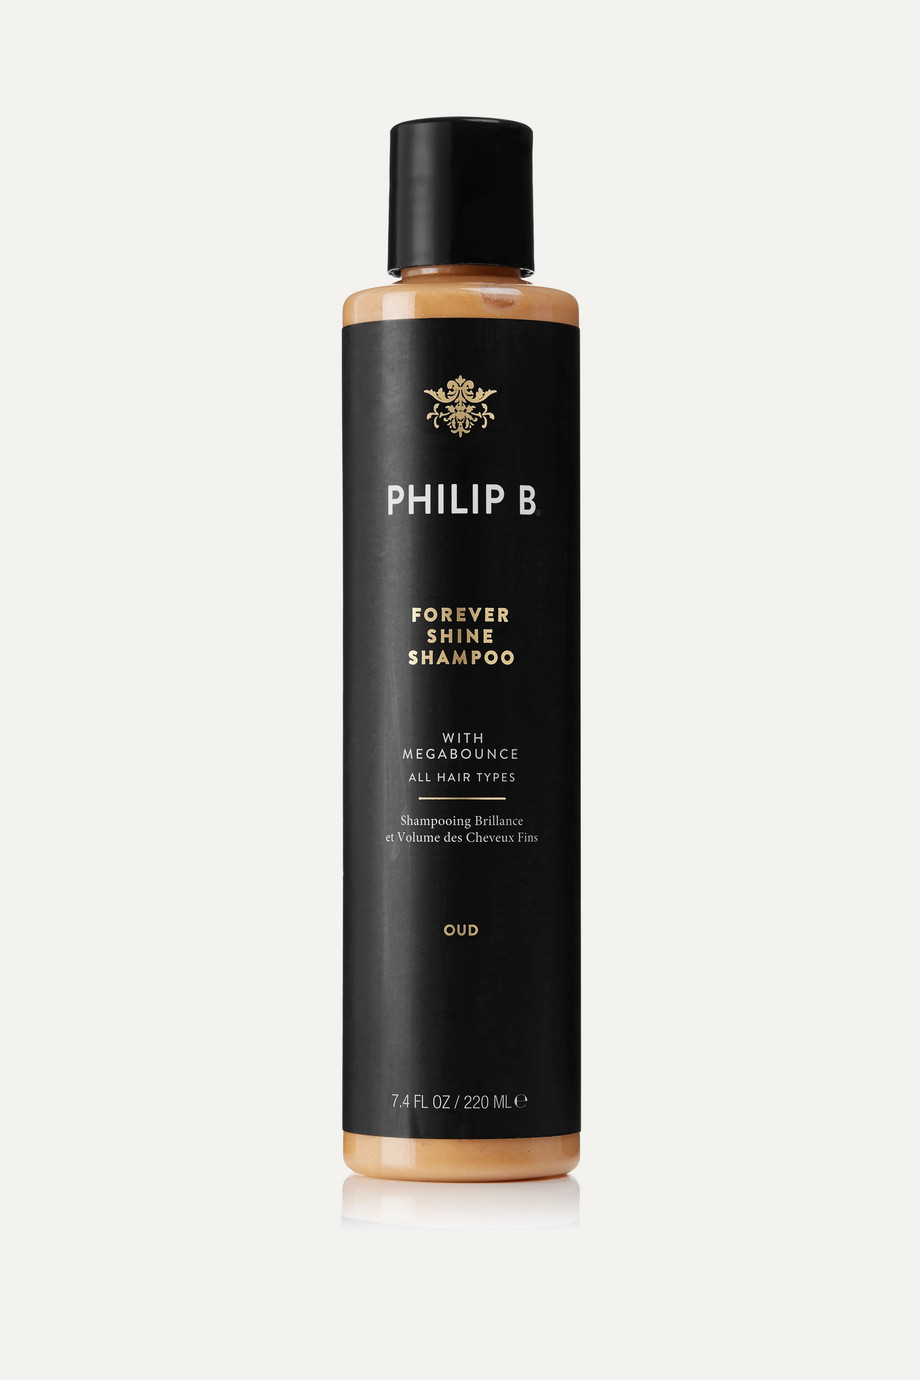 Philip B Forever Shine Shampoo, 220ml